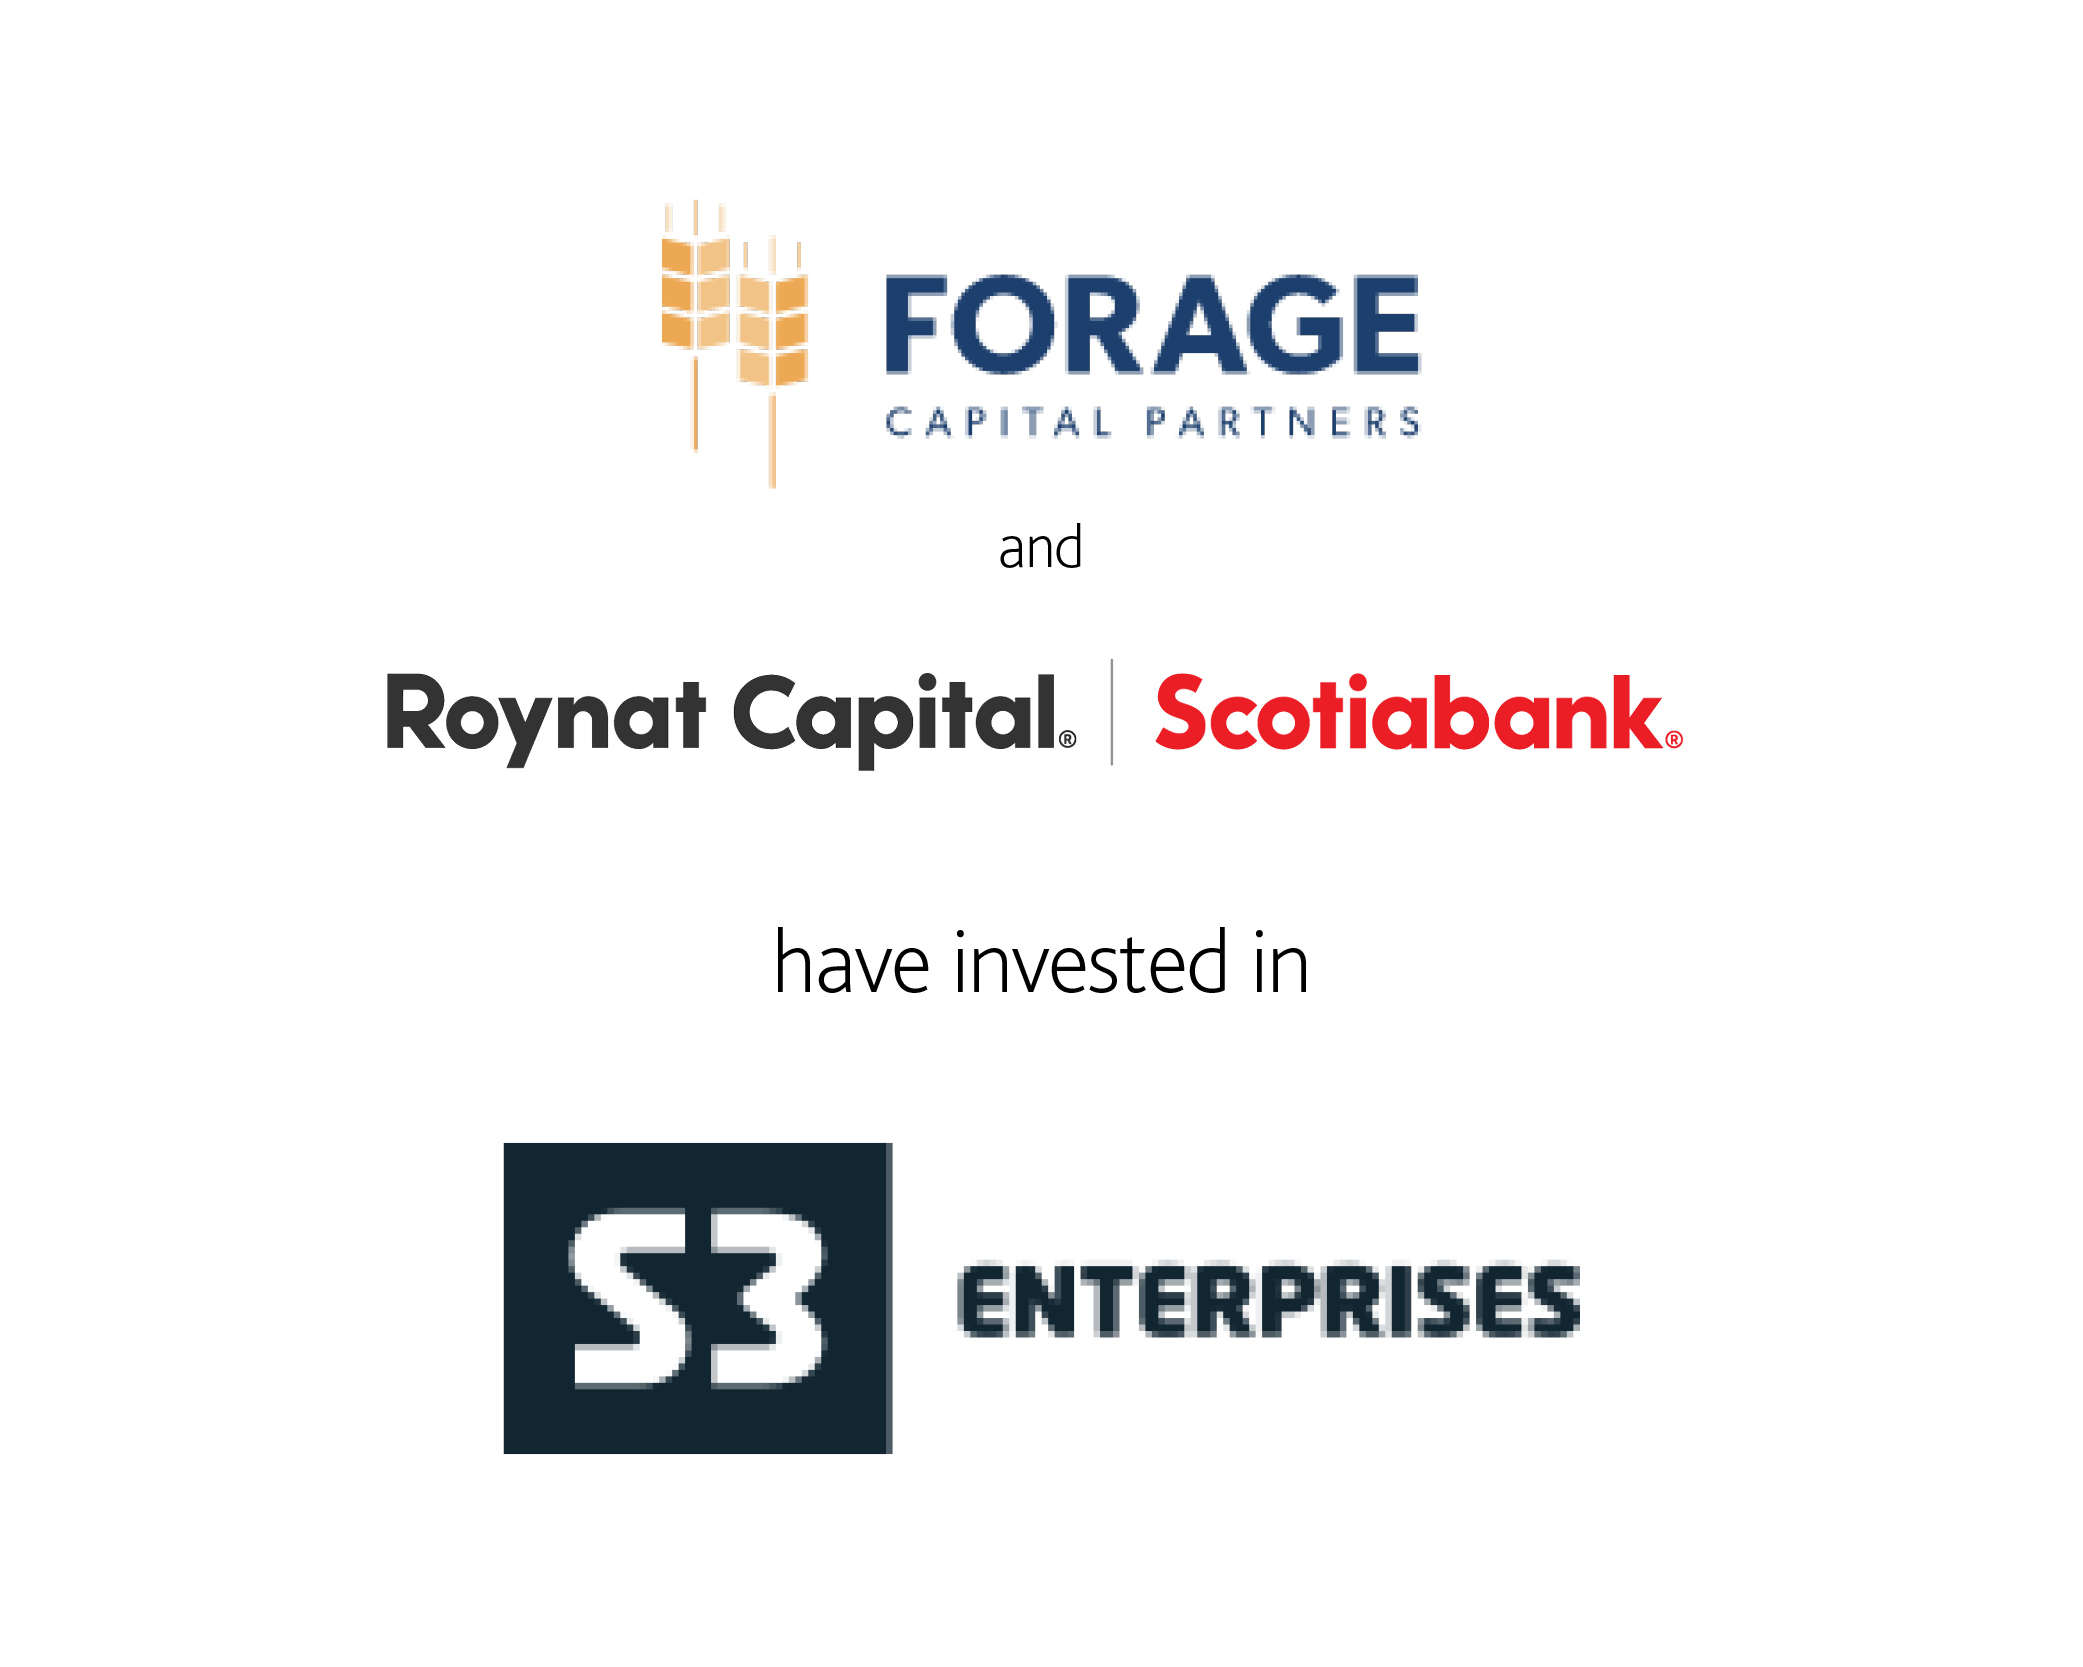 Forage Capital Partners and Roynat Capital Scotiabank have invested in S3 Enterprises